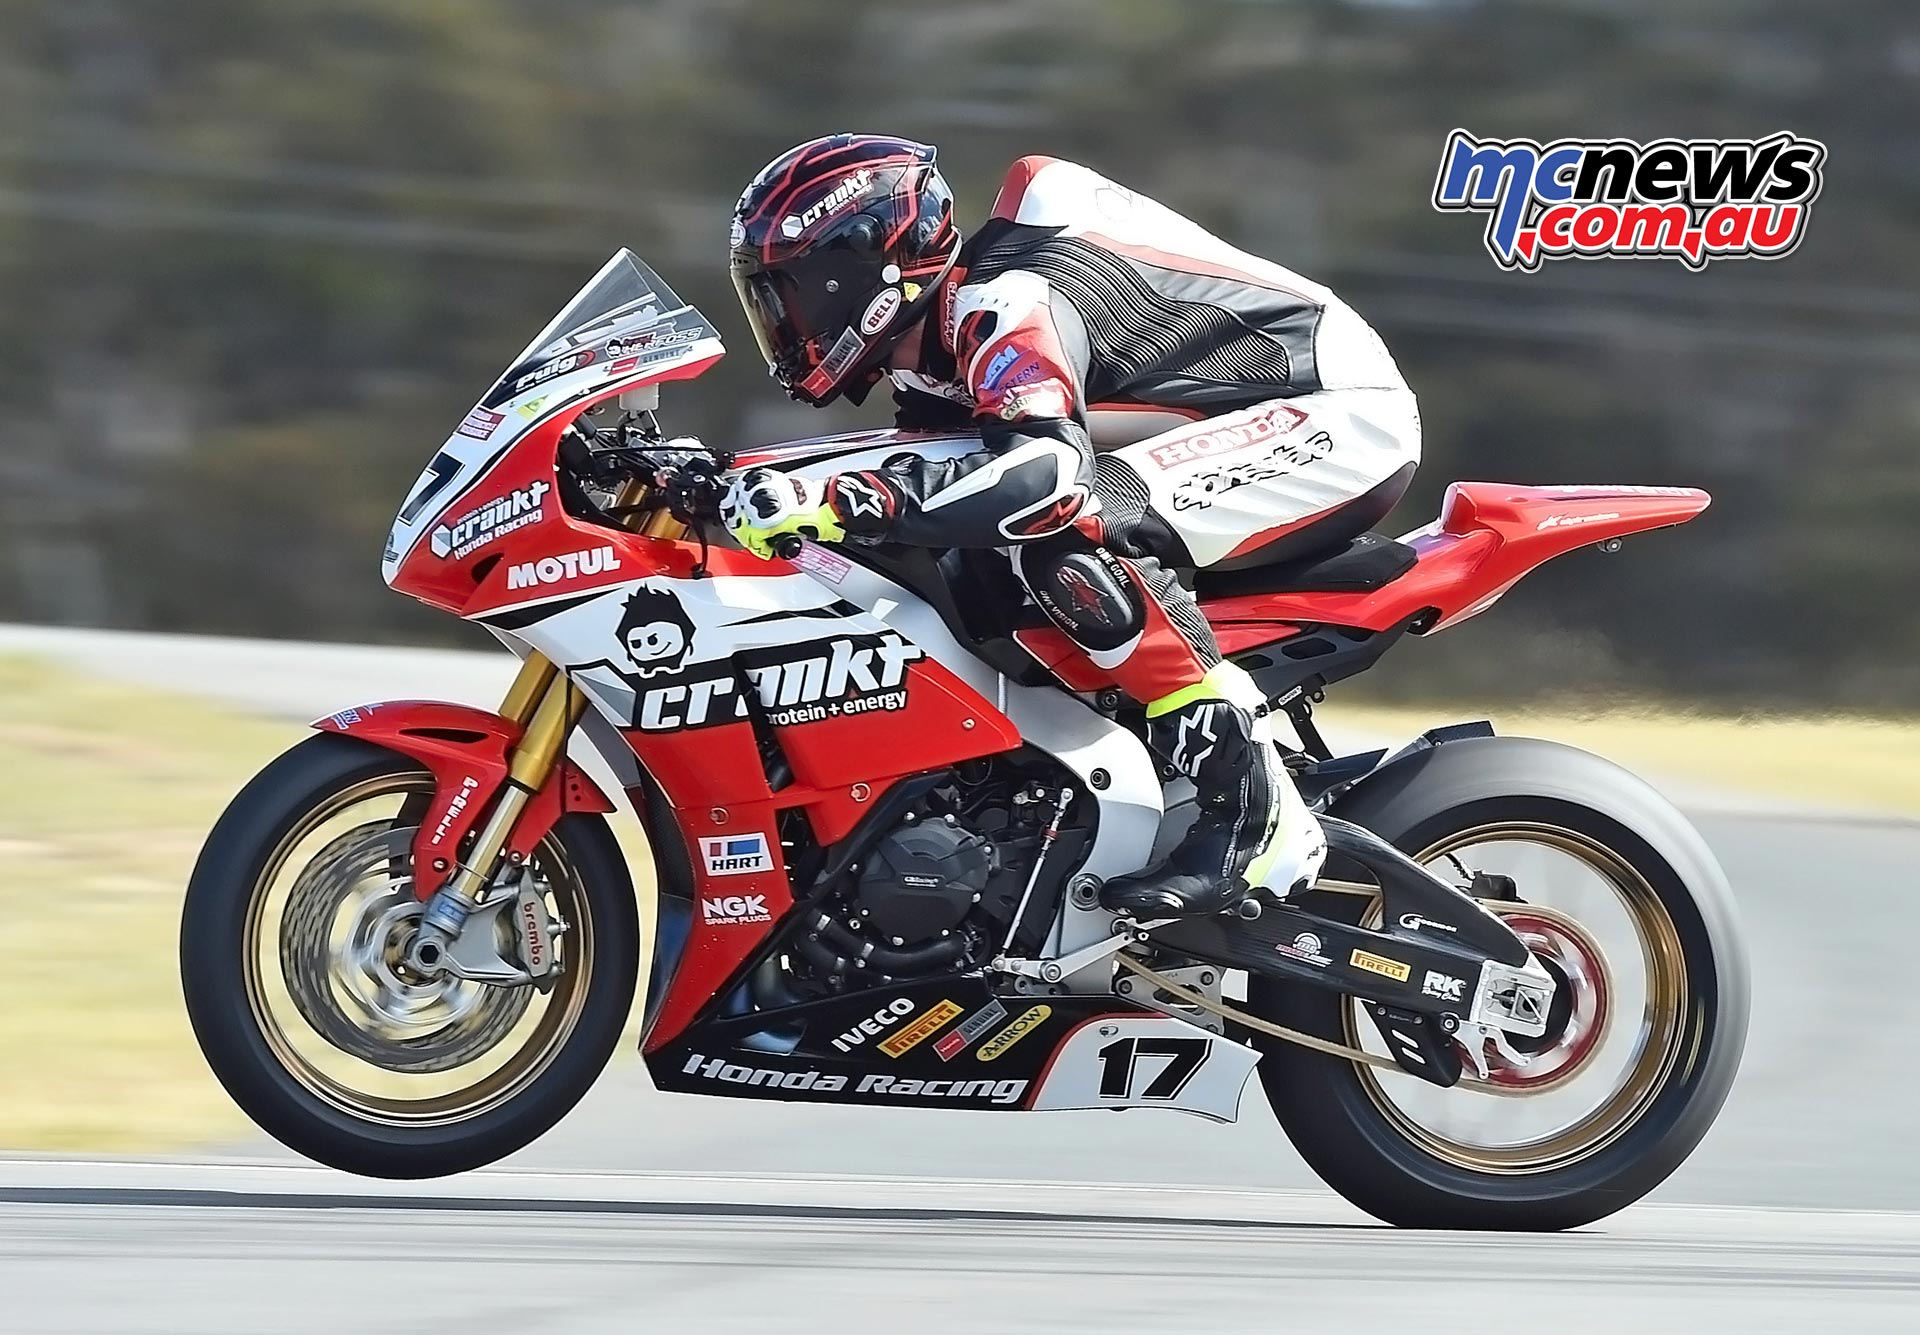 ASBK 2016 -Morgan Park - Troy Herfoss - Image by Keith Muir